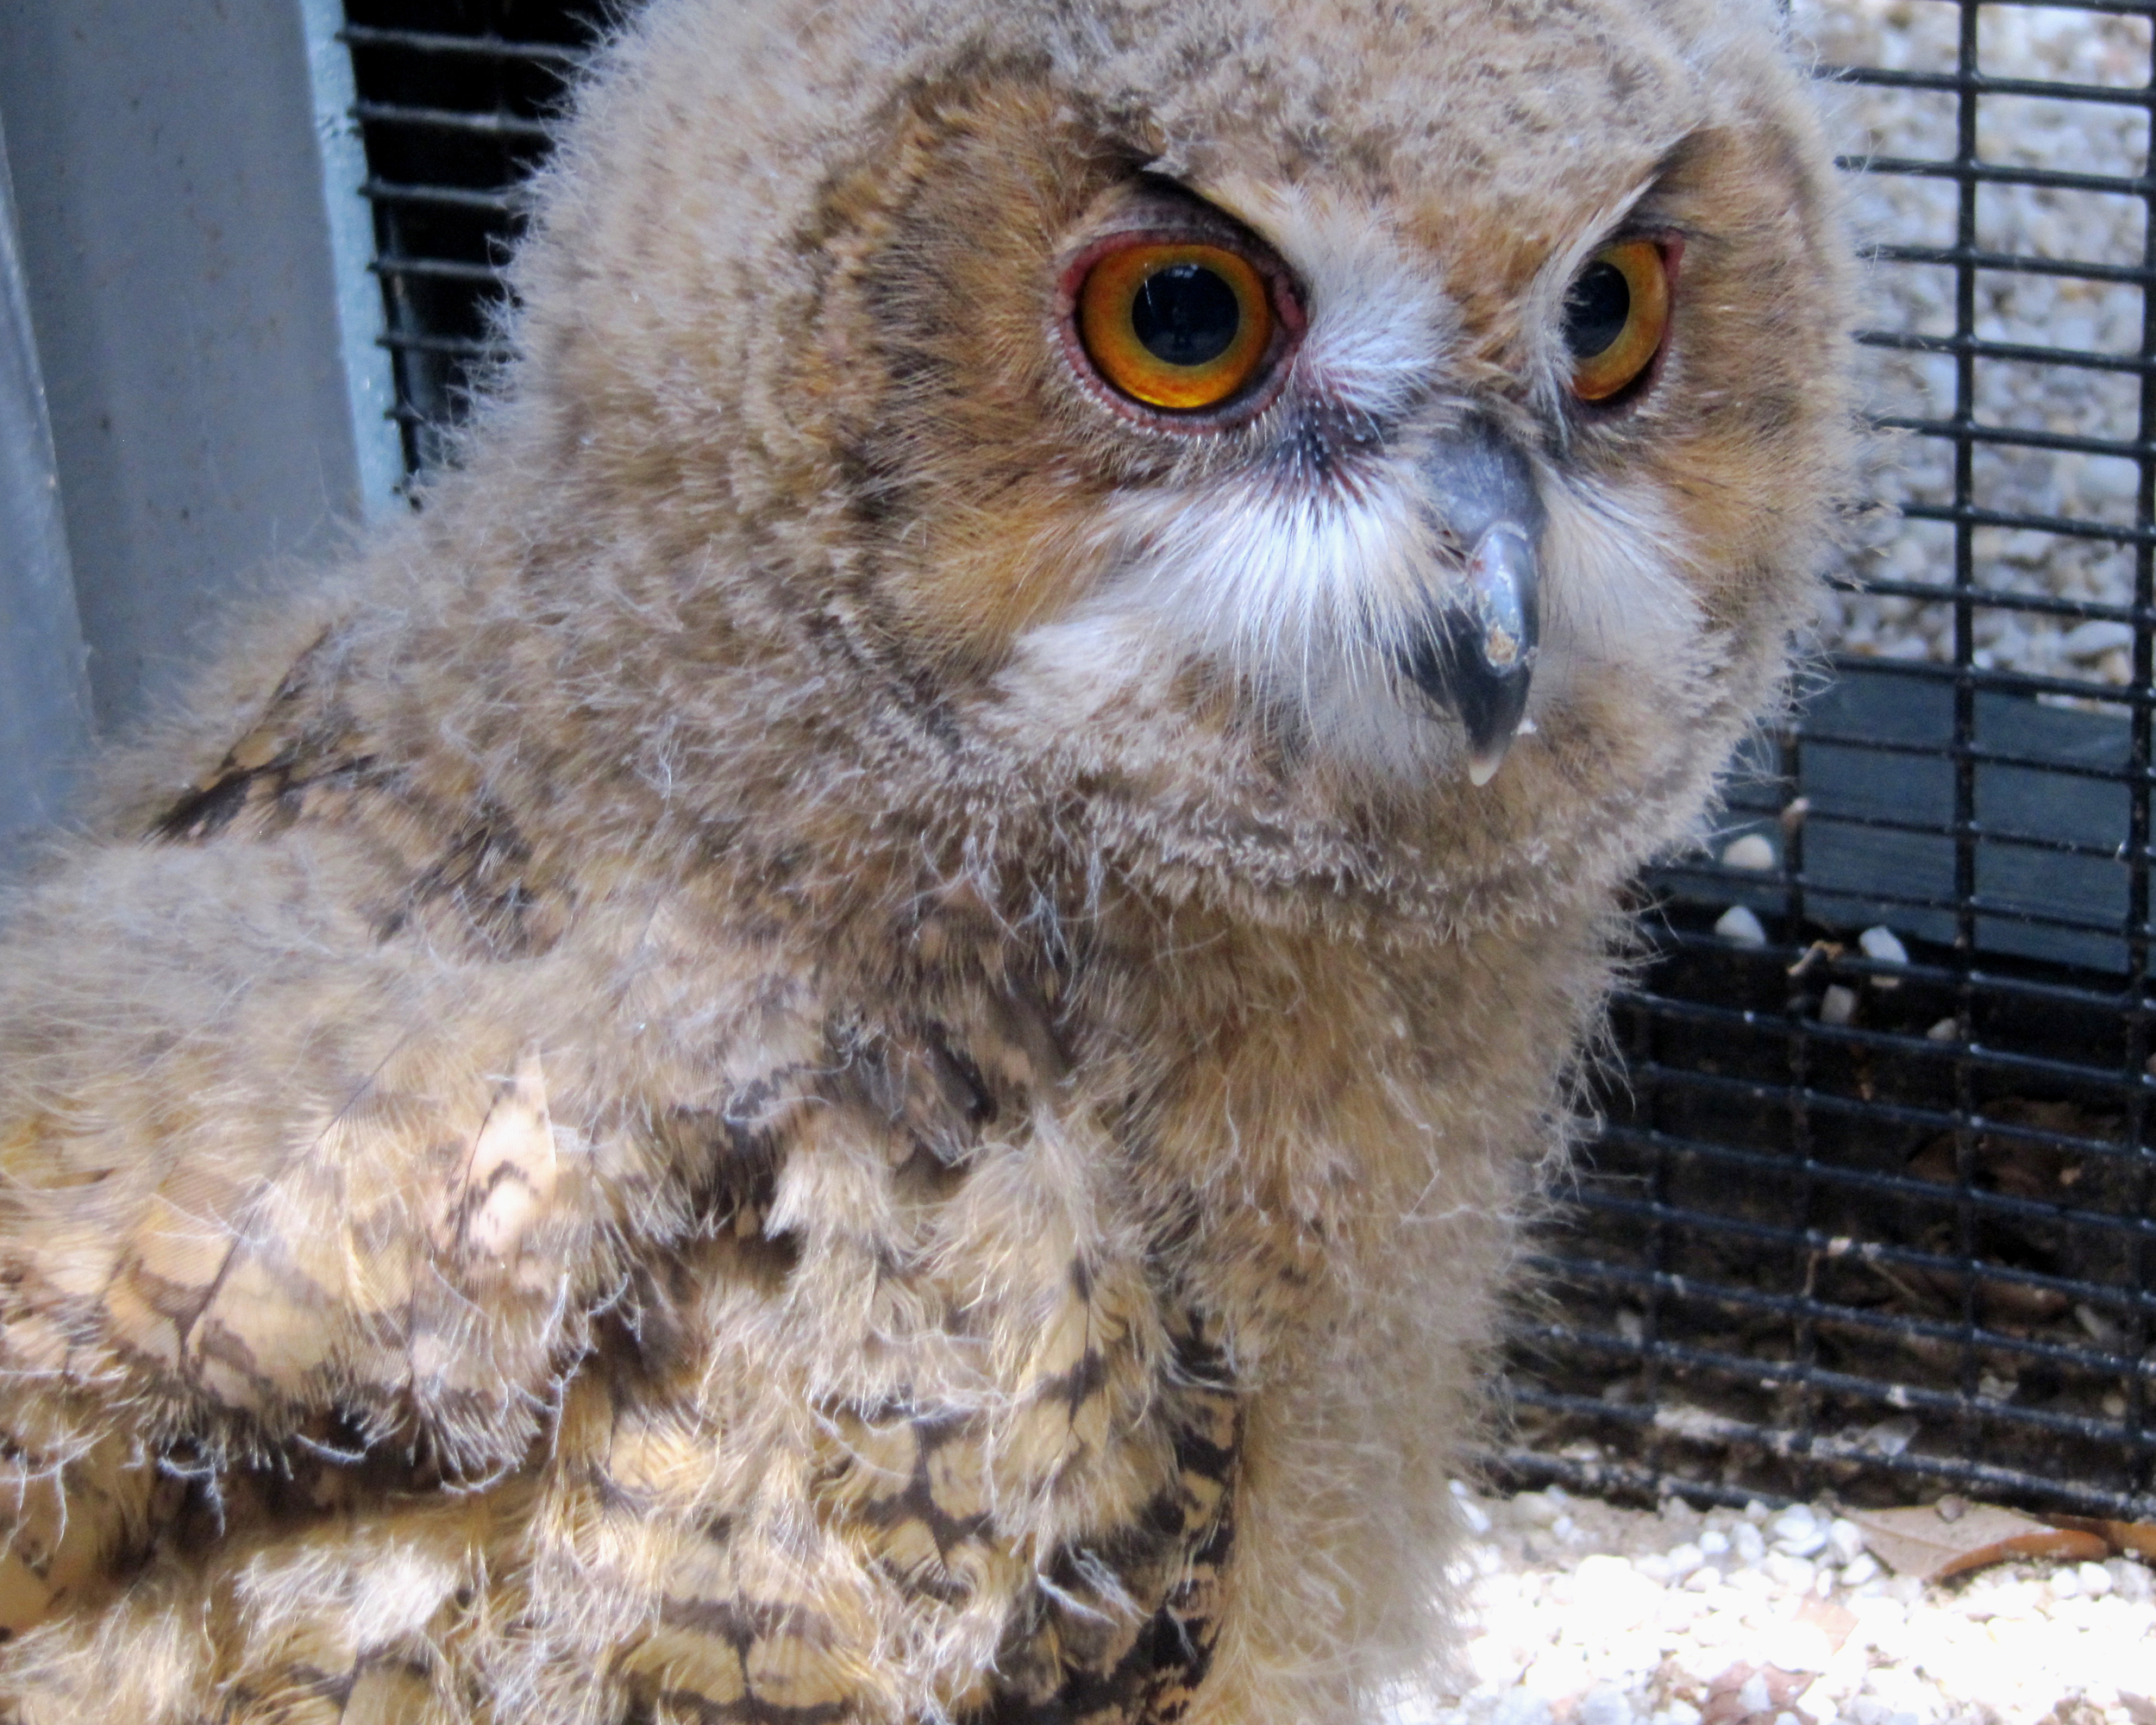 Eurasian eagle owl chick at the Center for Birds of Prey in Awendaw, SC.